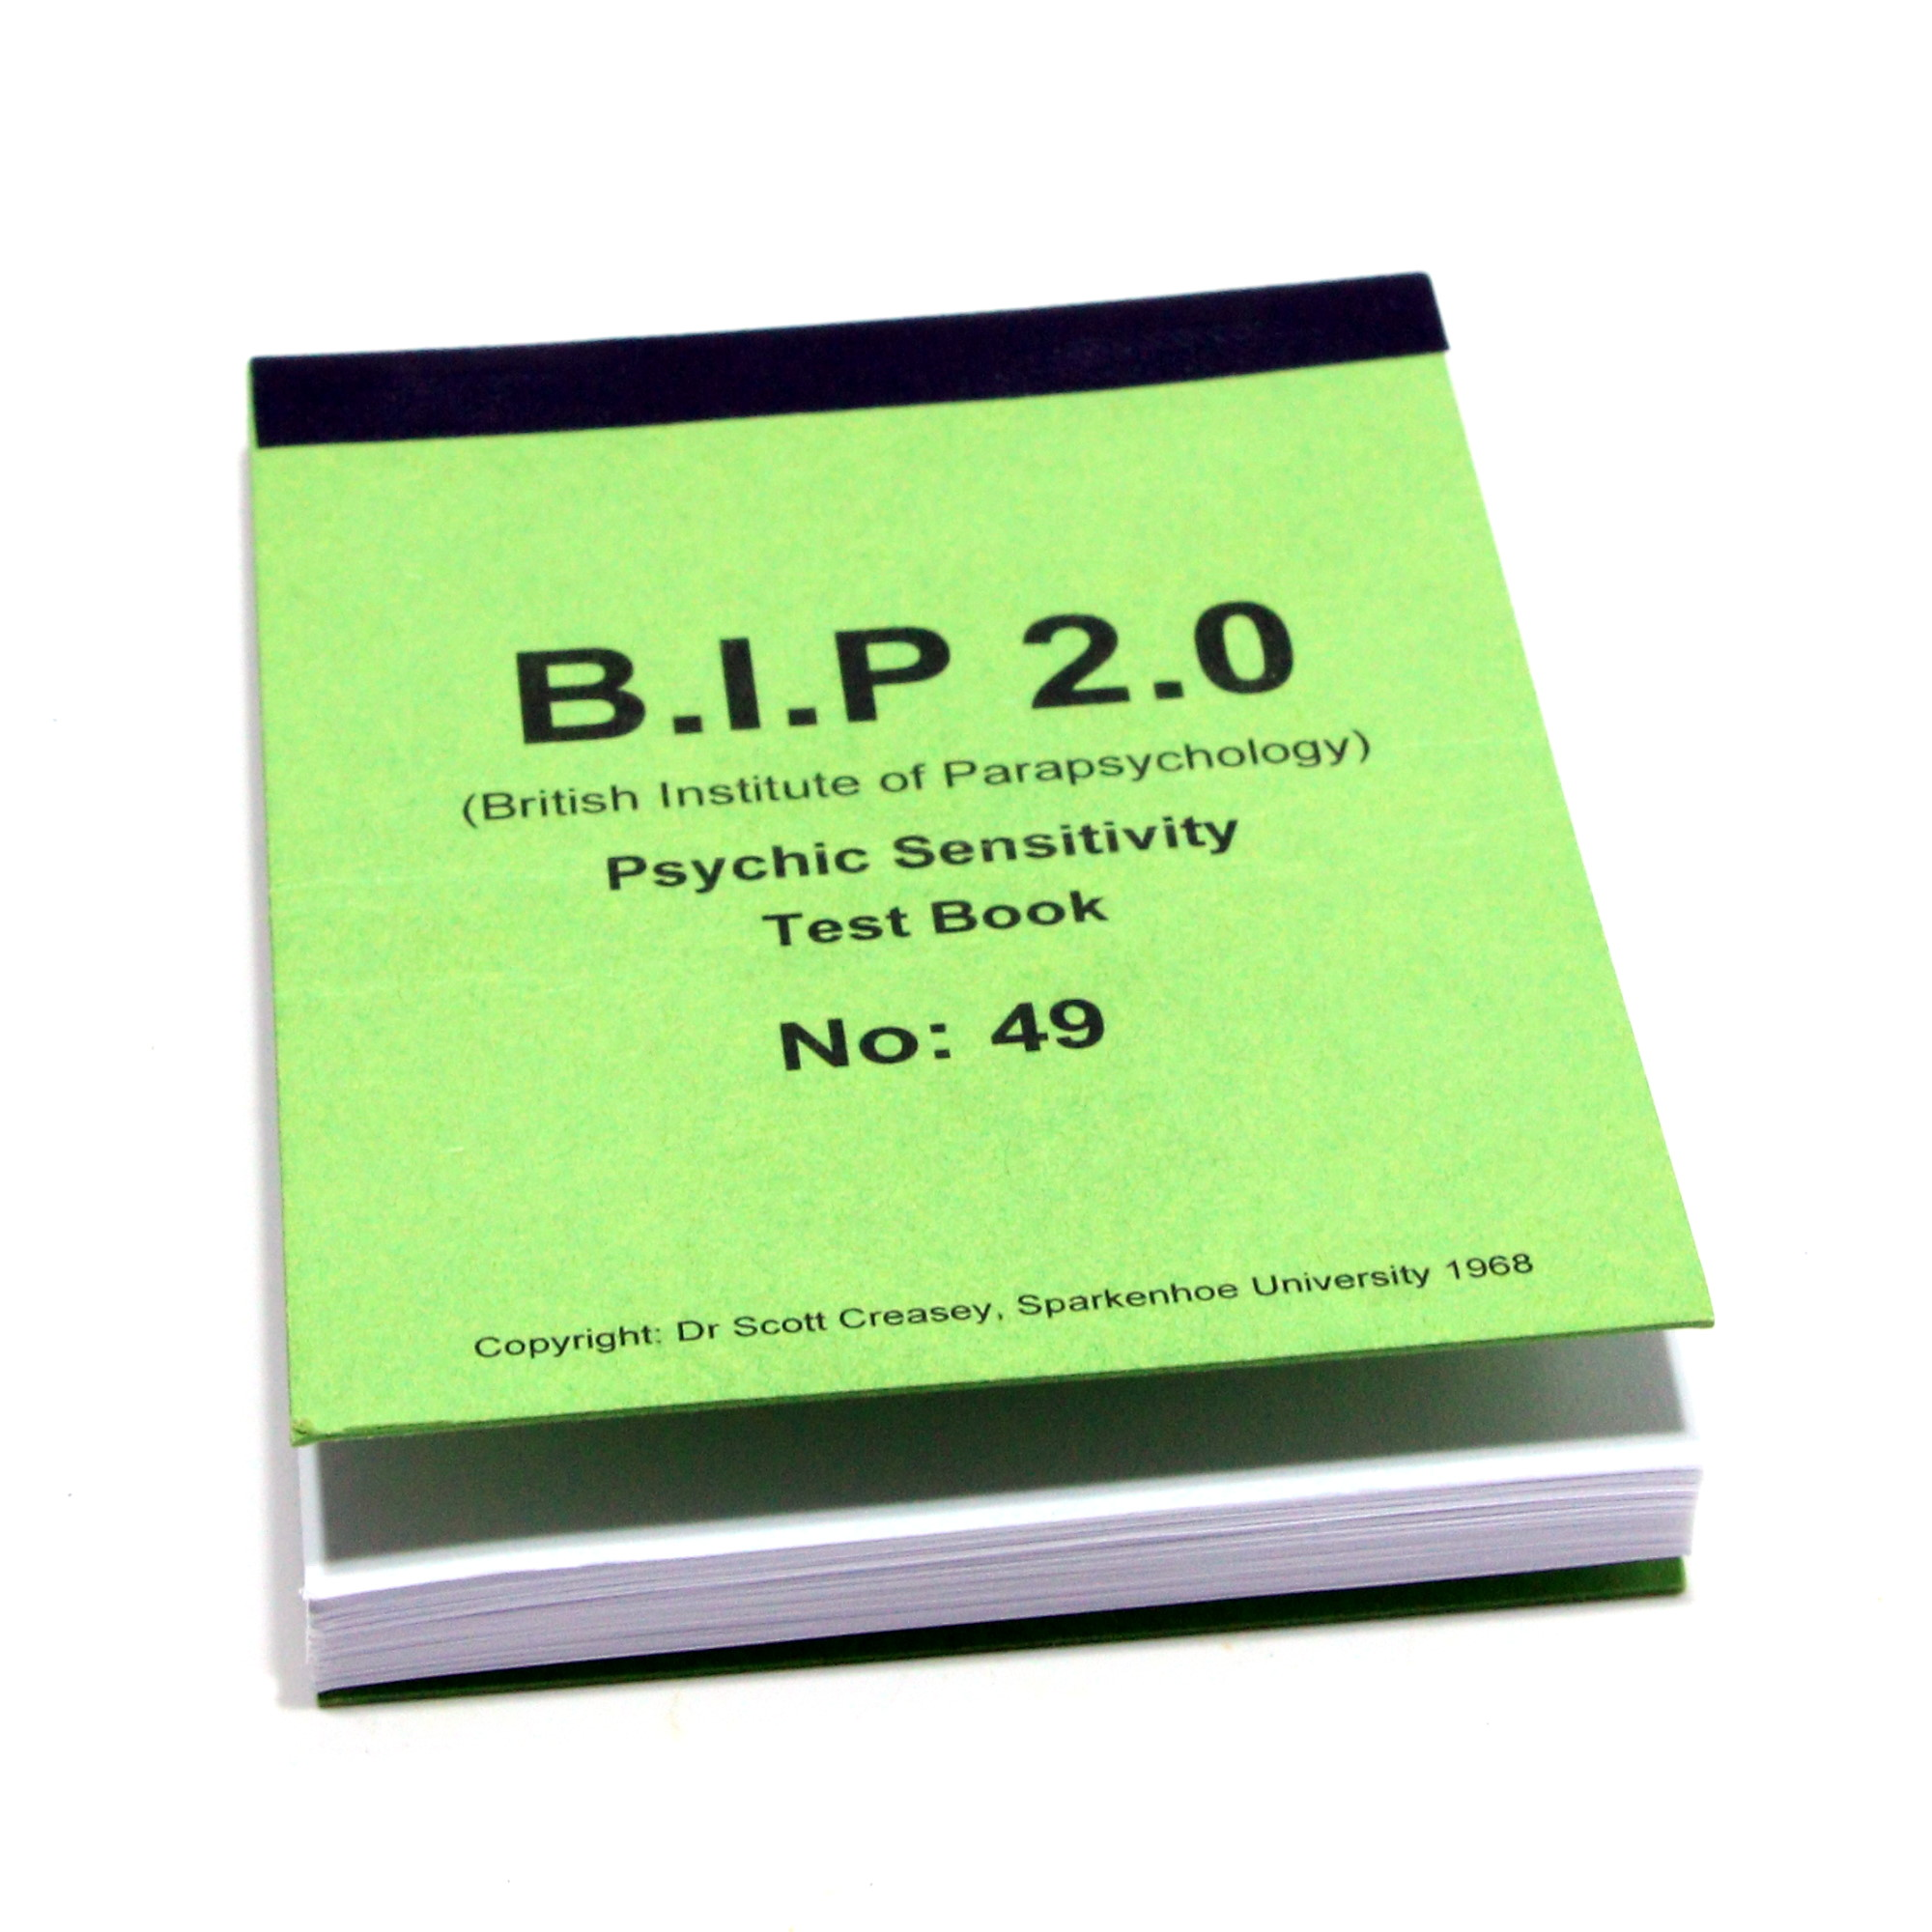 BIP Book 2.0 by Scott Creasy